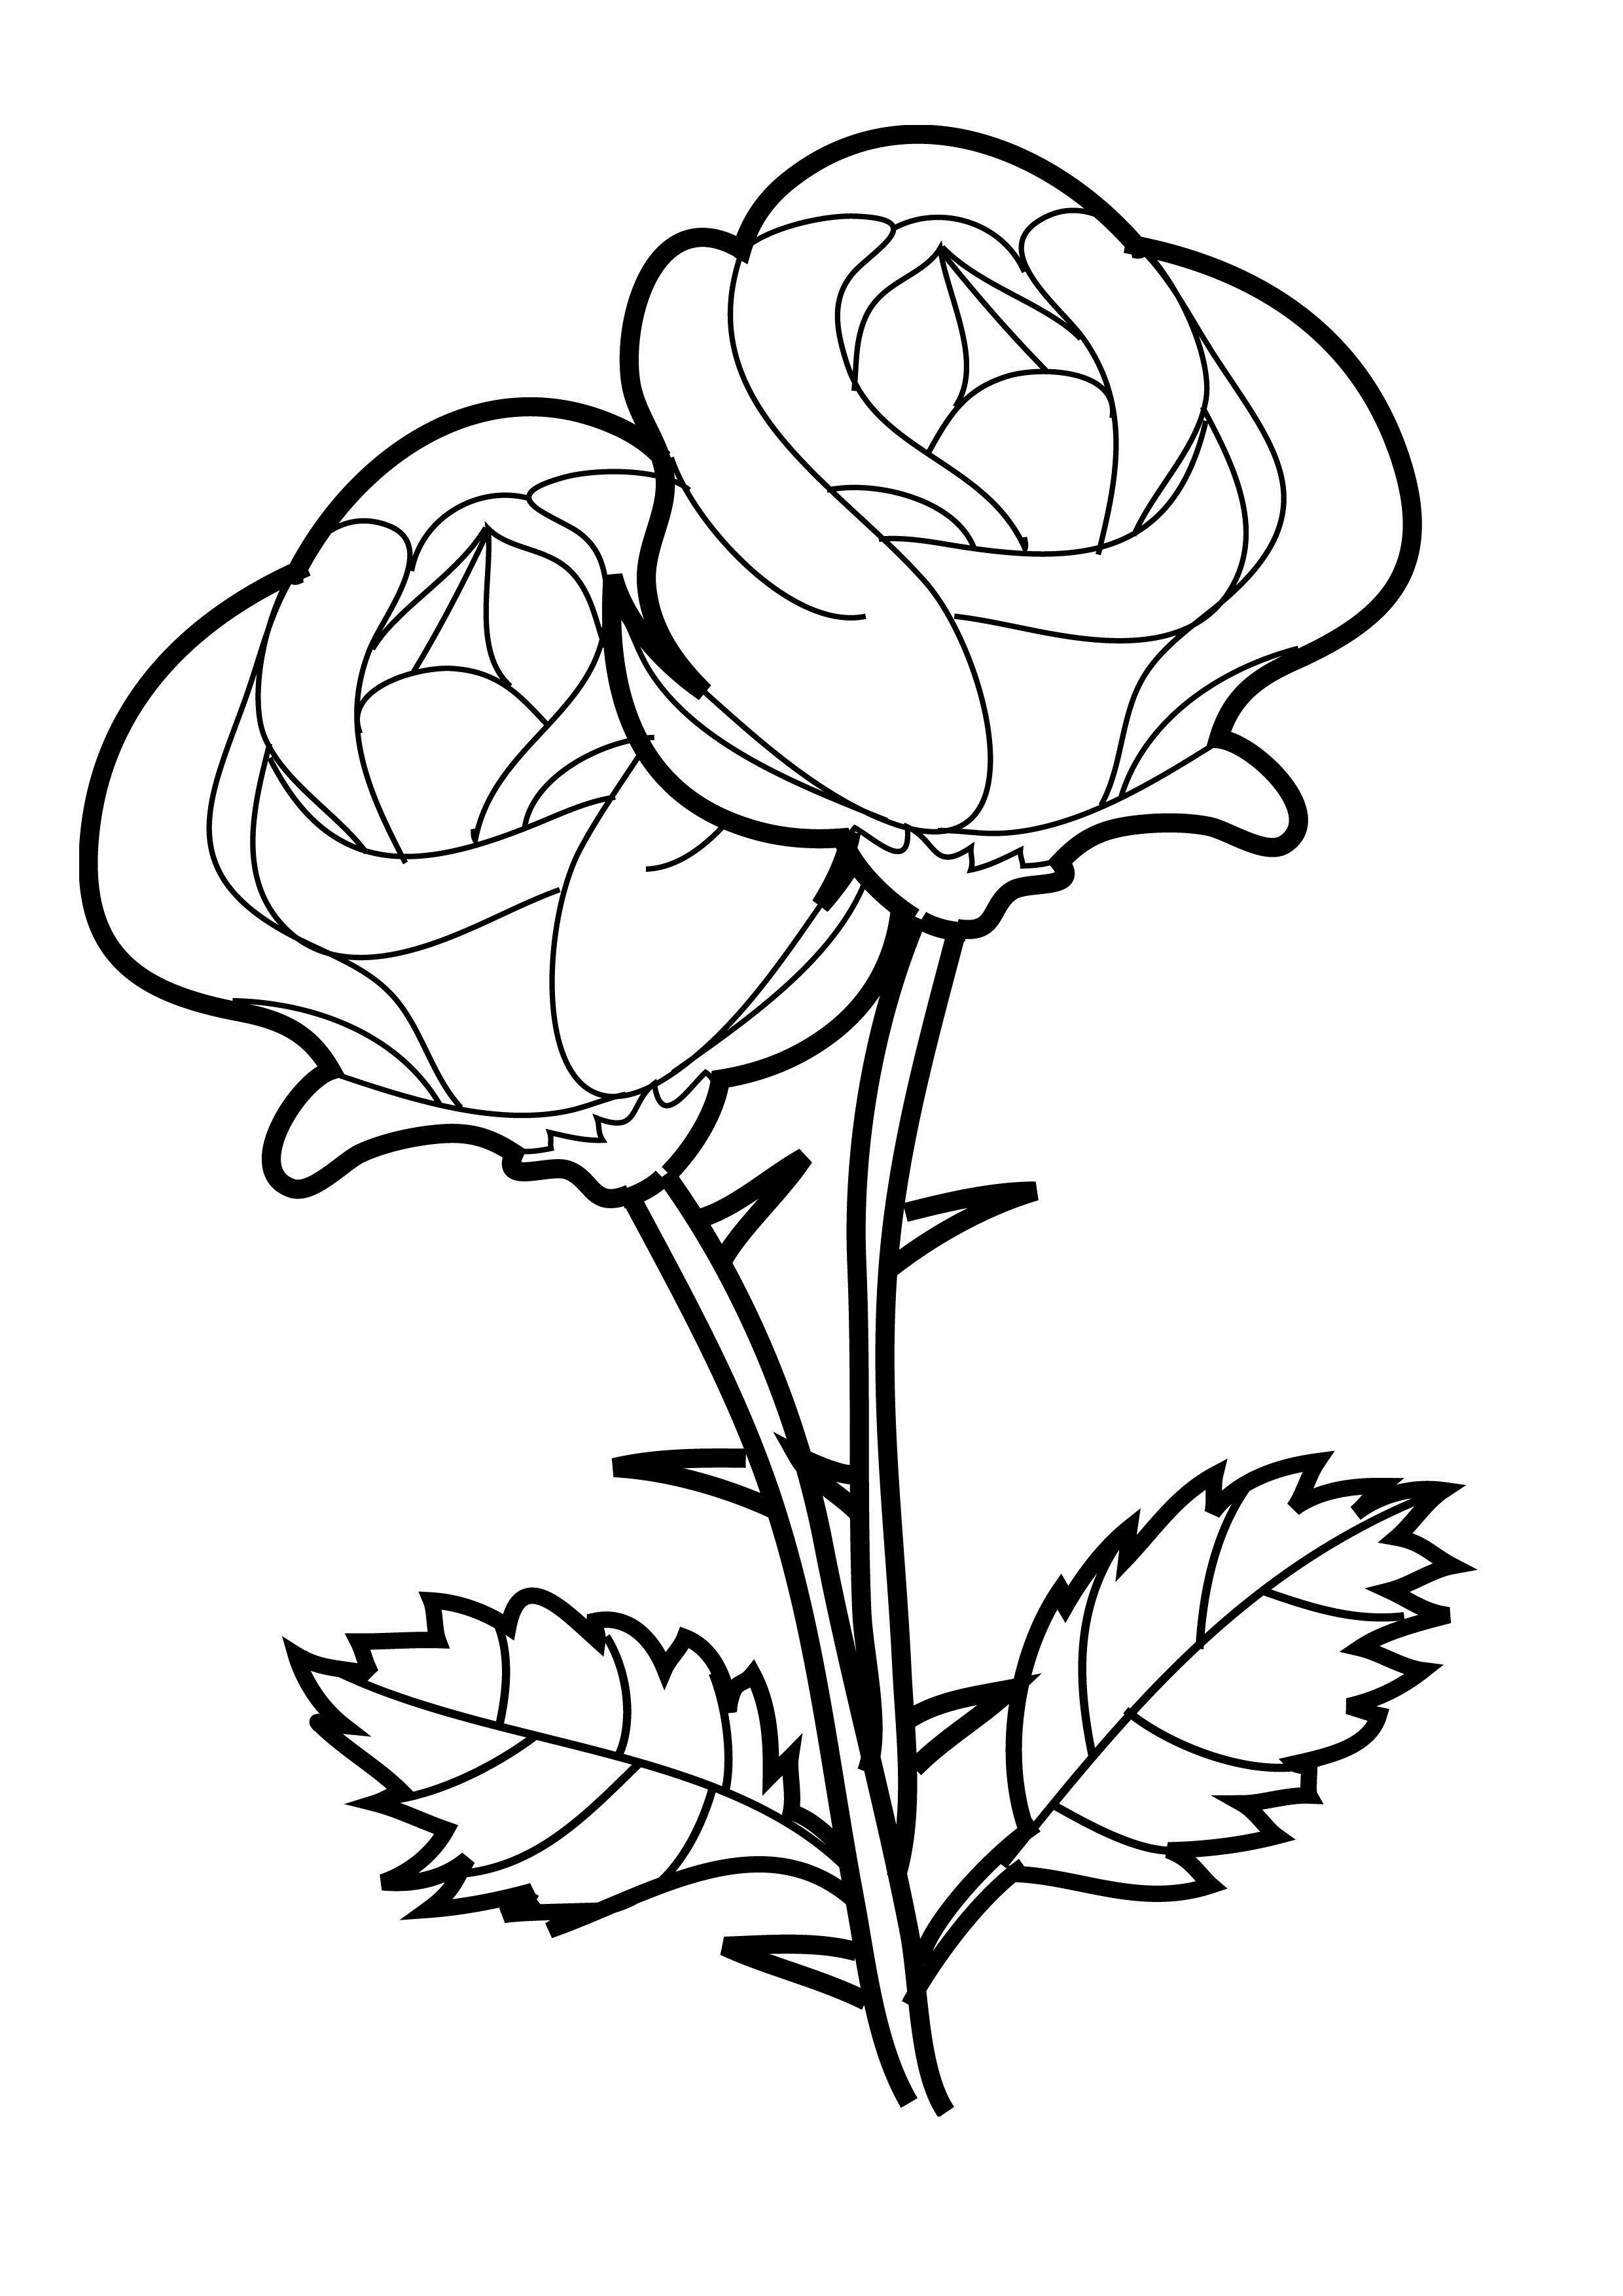 2480x3508 Coloring Pages Marvelous Coloring Pages Draw A Rose For Kids